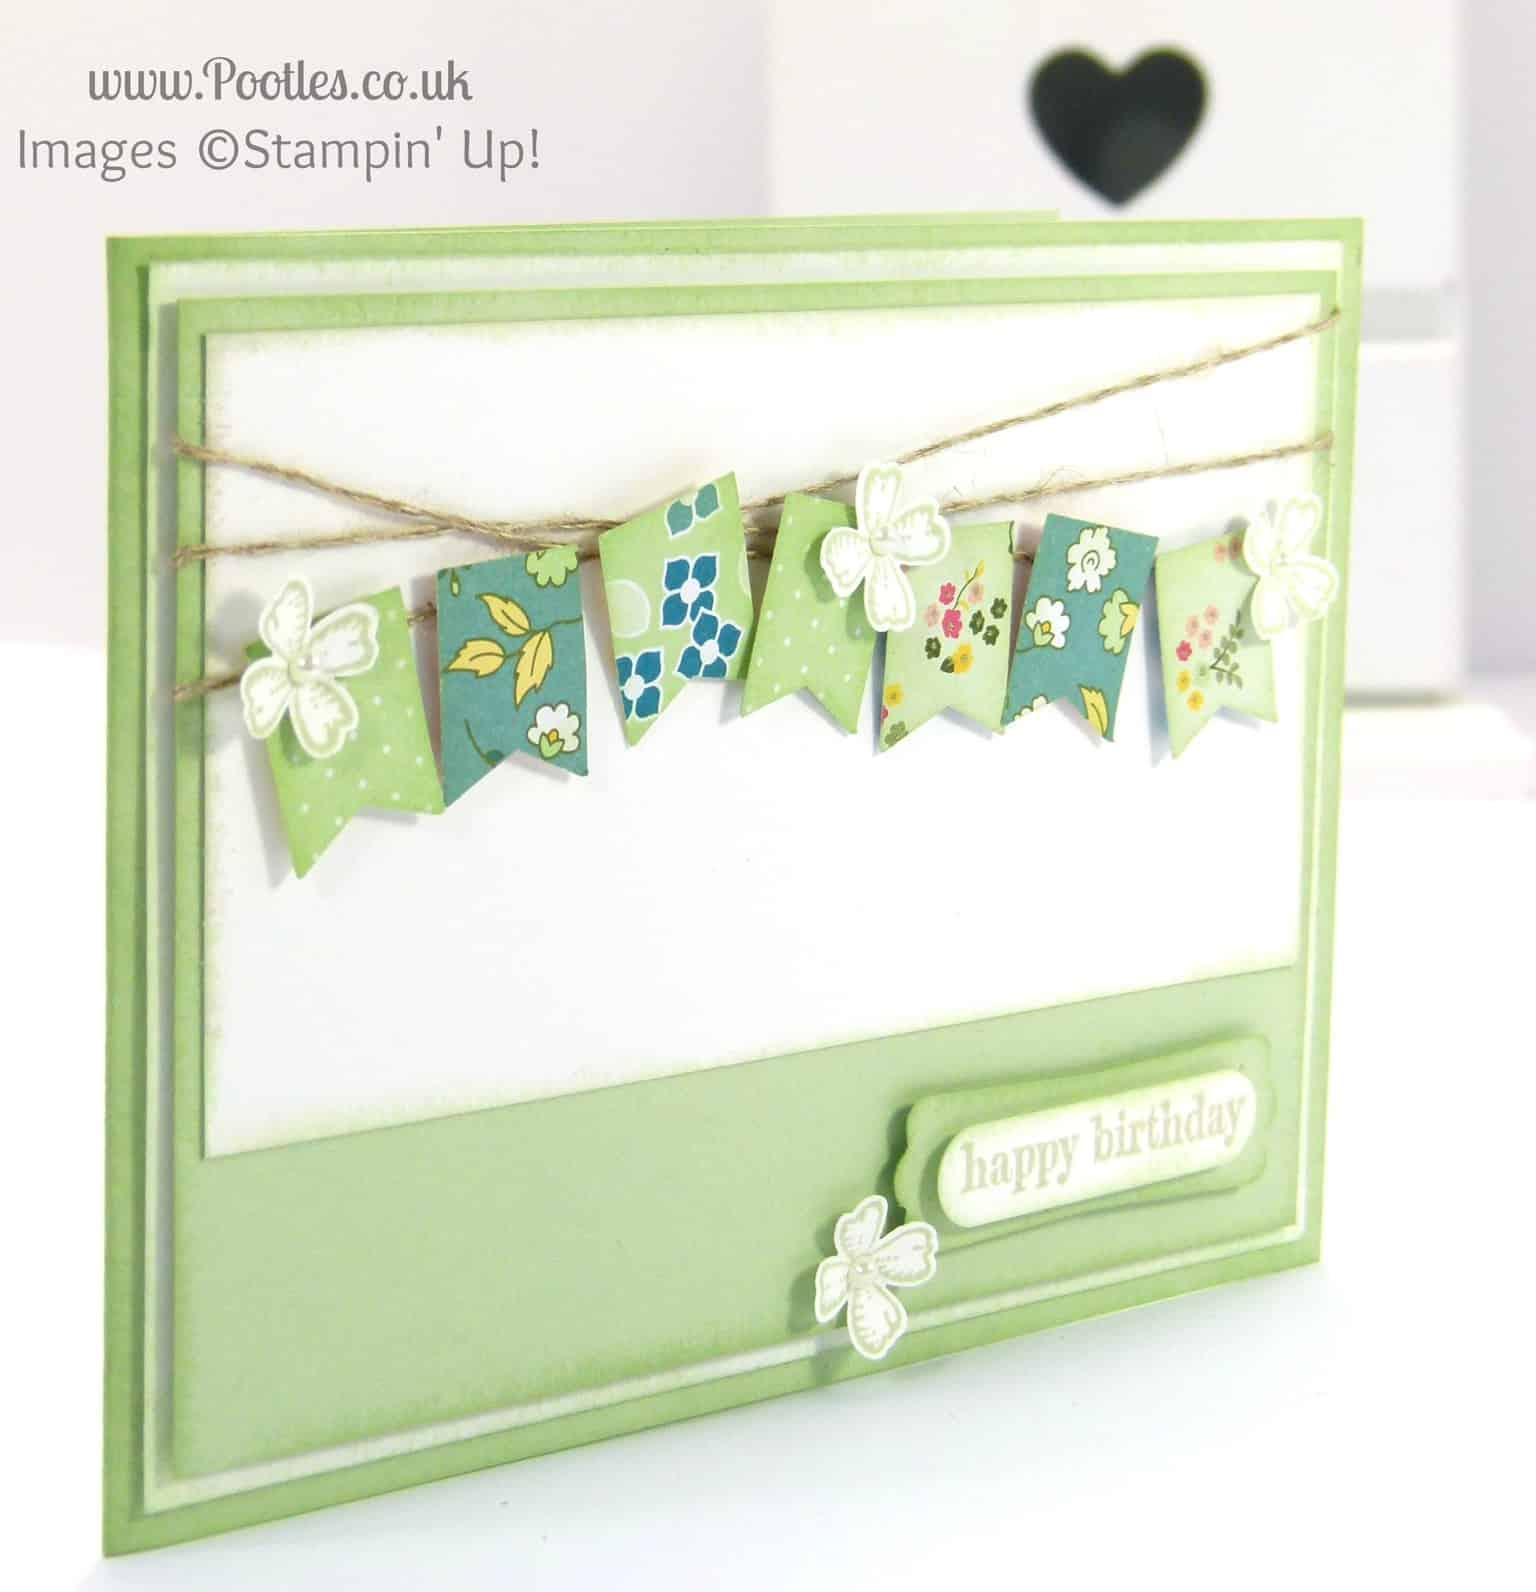 Stampin' Up! UK Demonstrator Pootles - Happy Birthday Mum!